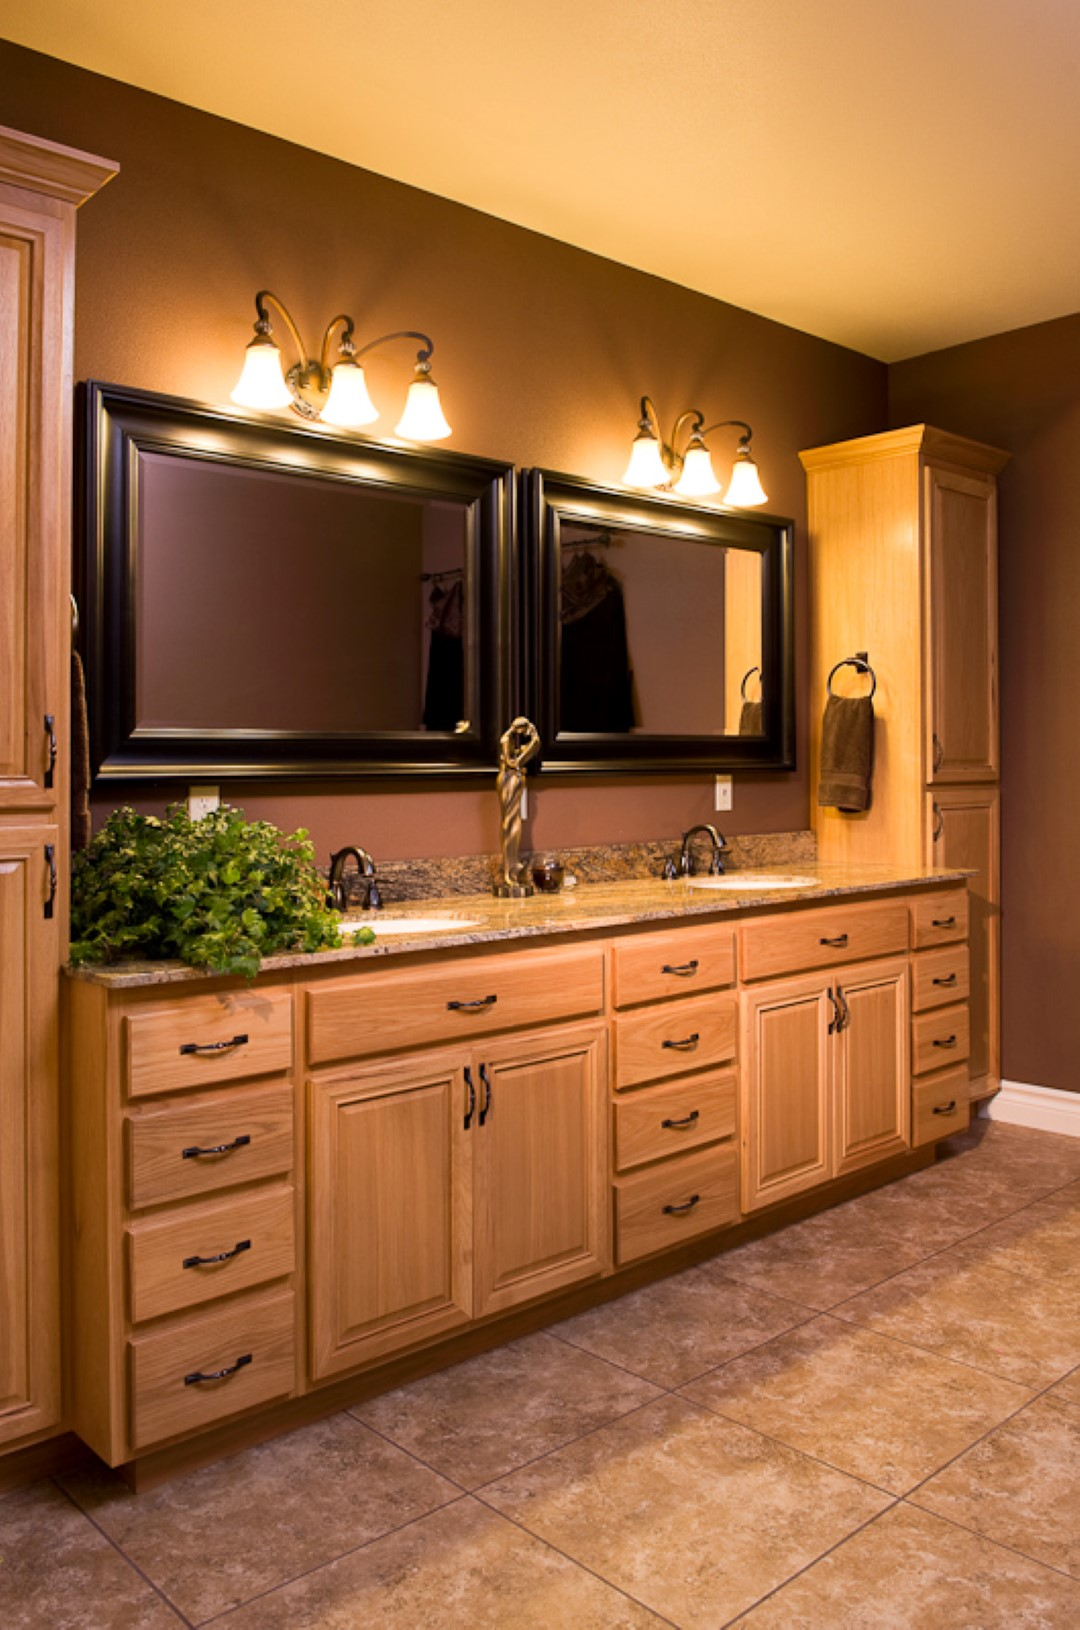 Cabinets-1016 (Large).jpg